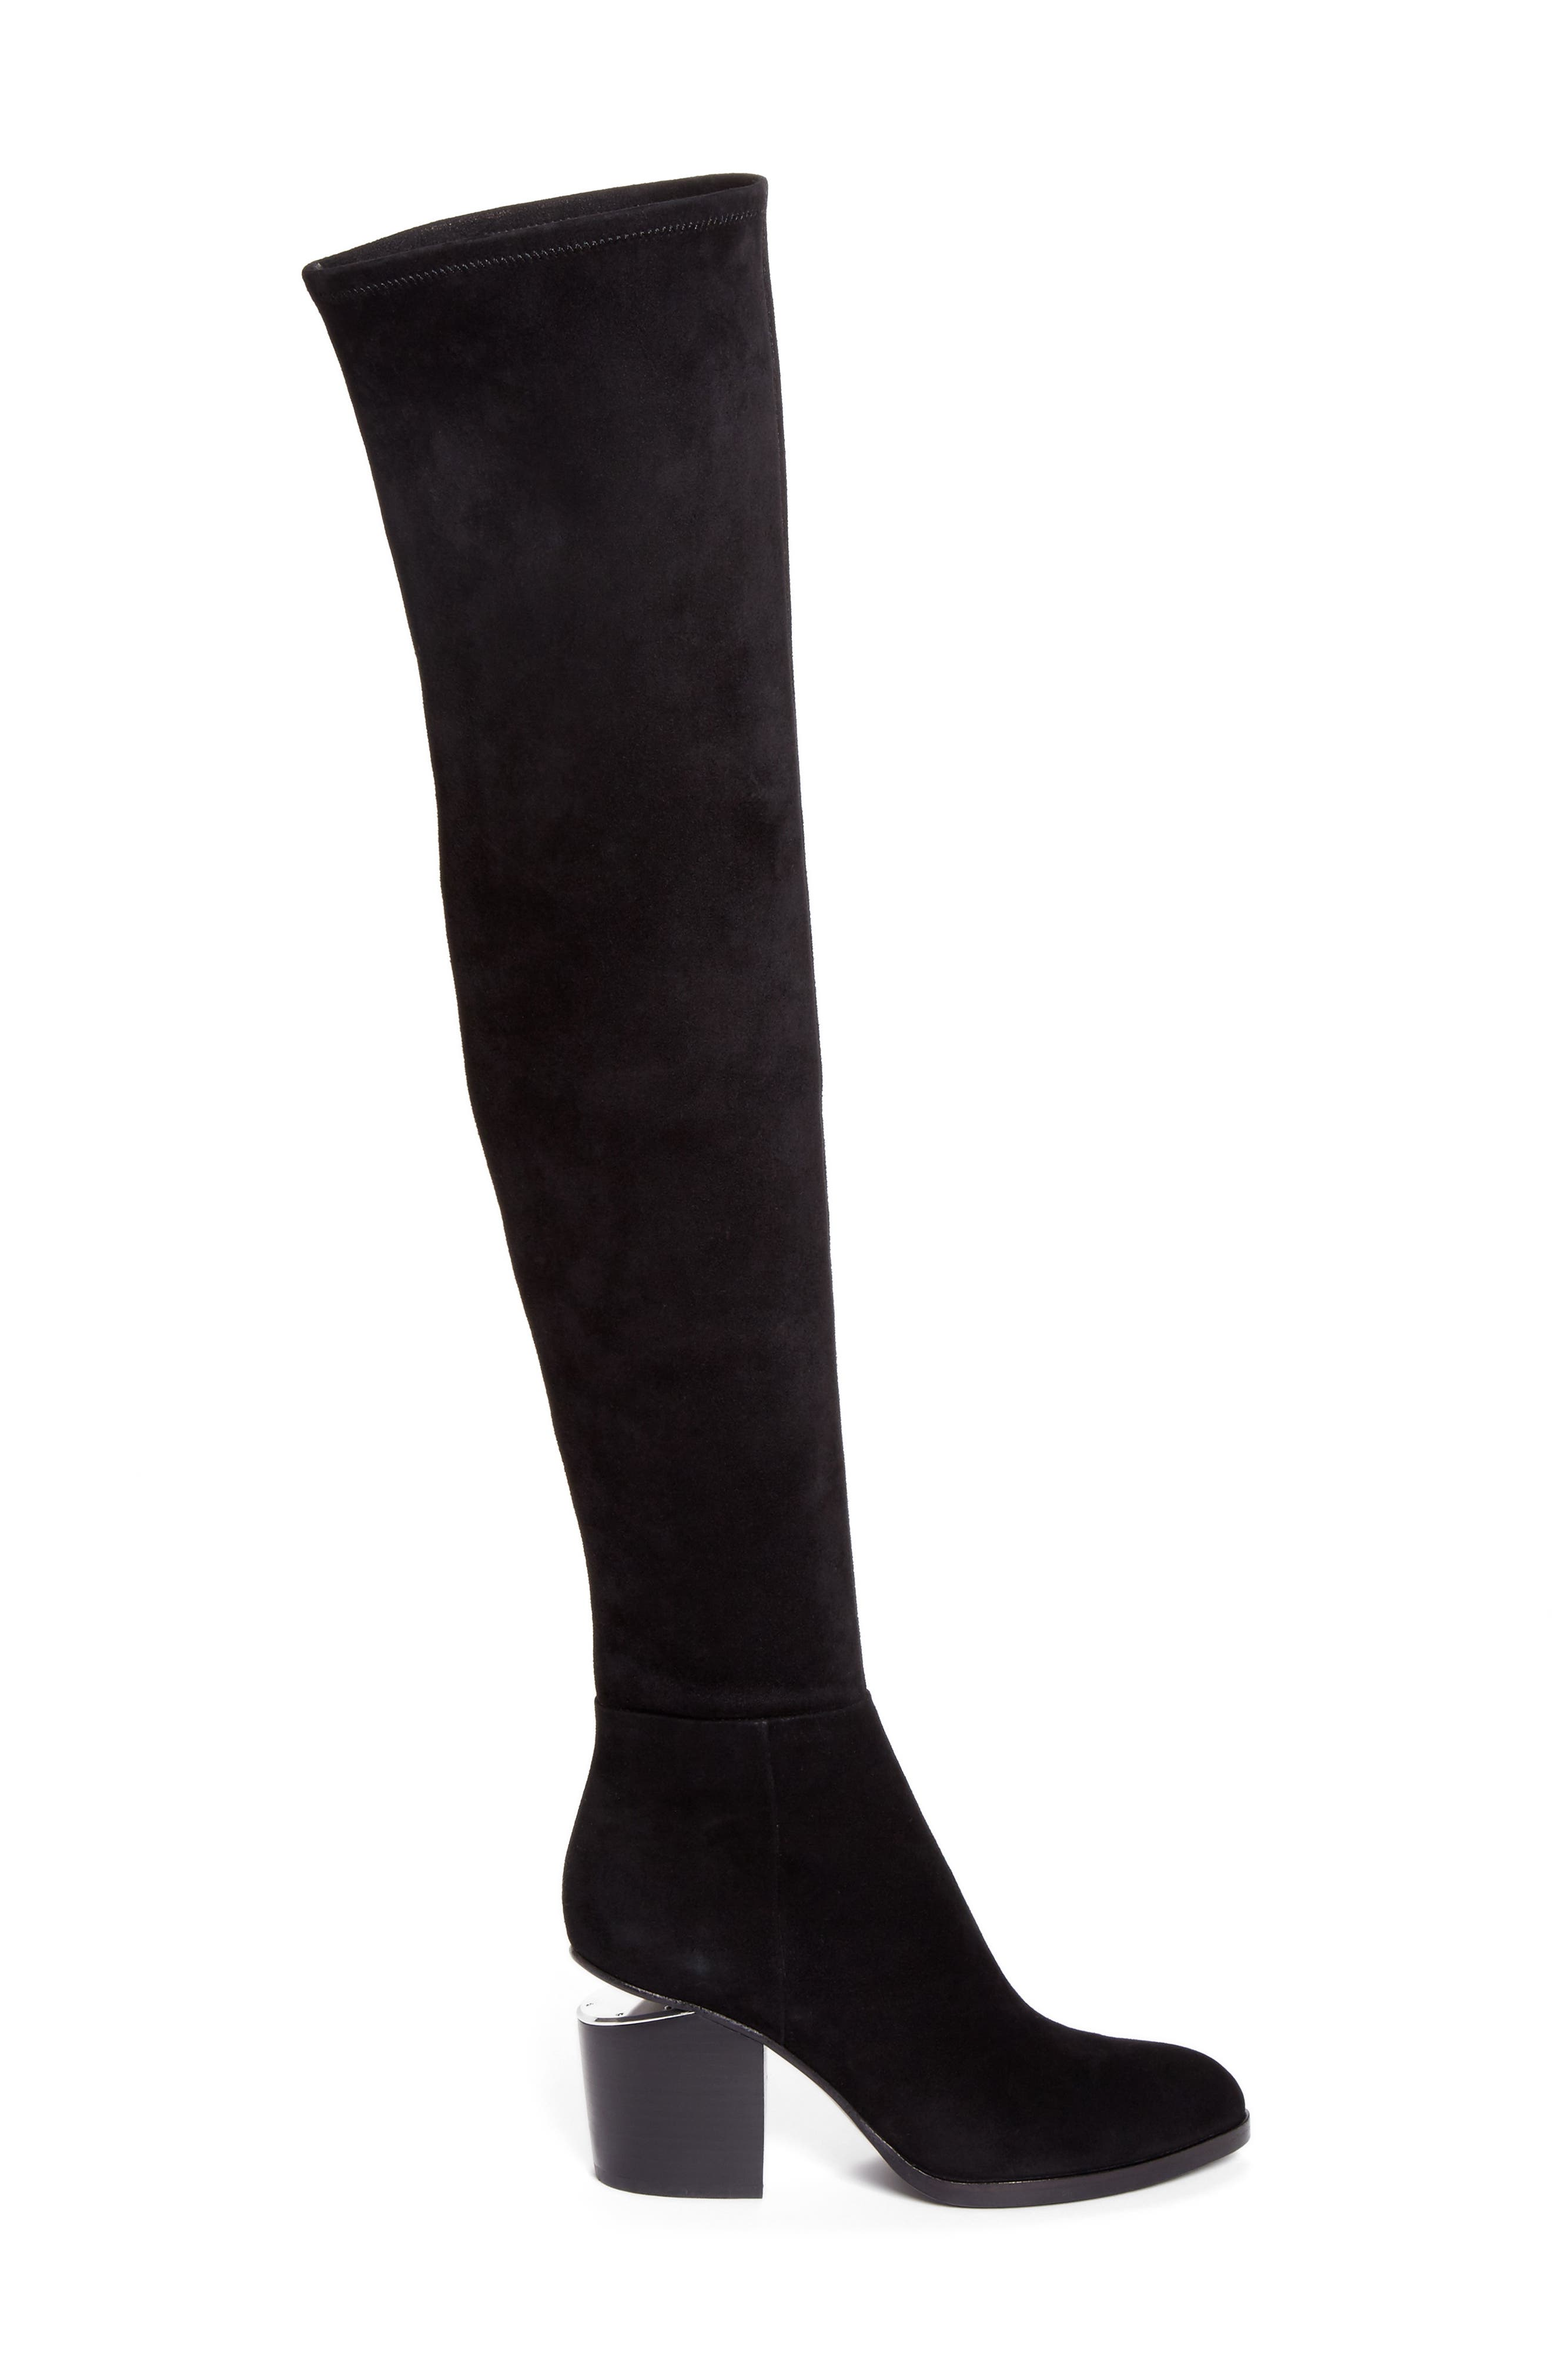 Gabi Over the Knee Boot,                             Alternate thumbnail 3, color,                             Black Suede